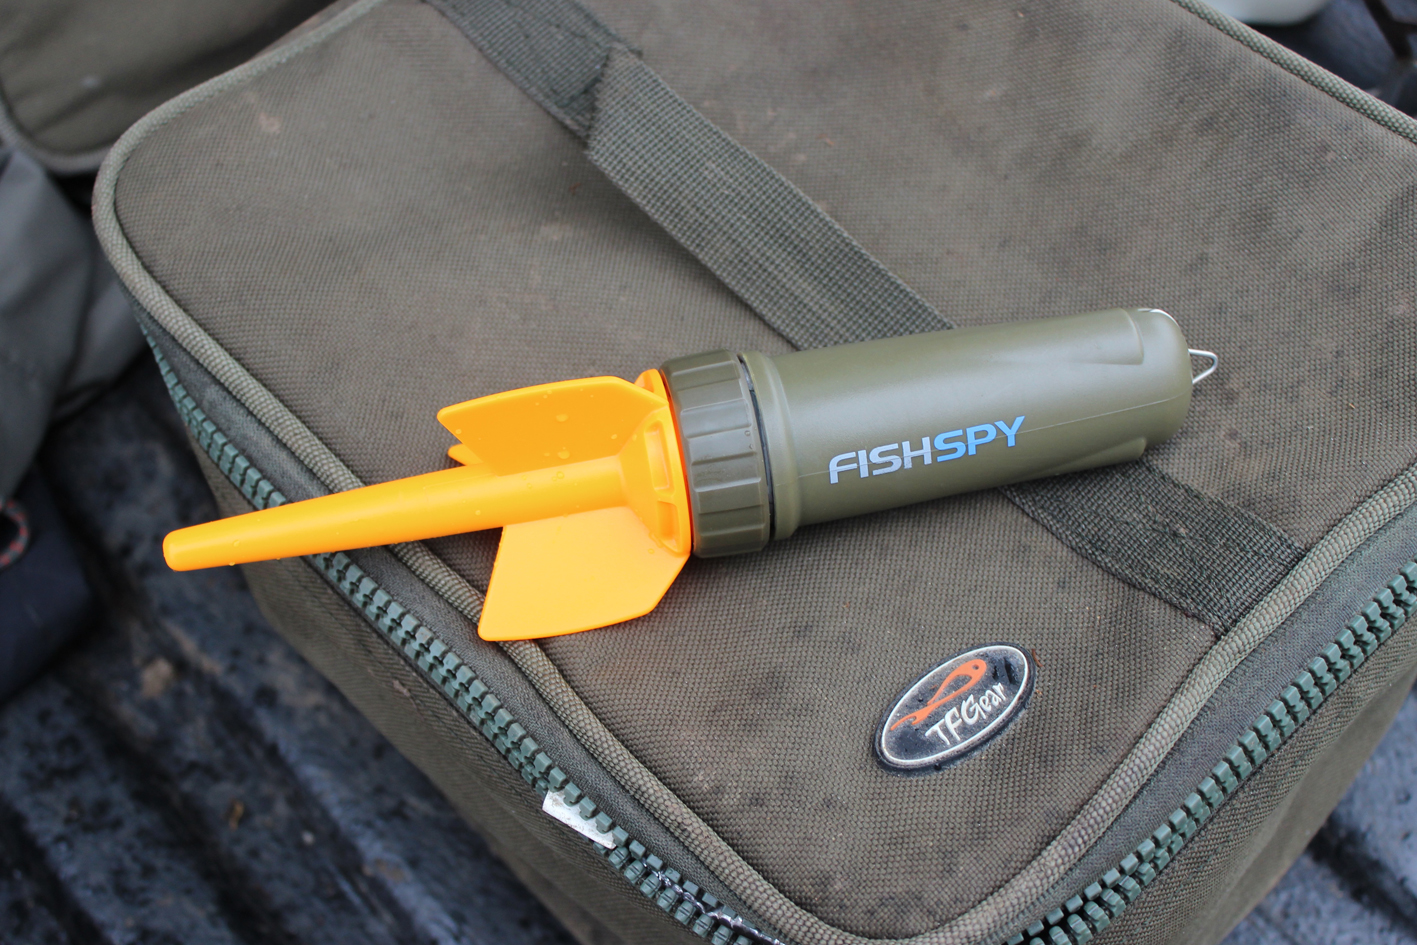 Serious carp anglers will find they have another tool to give them that extra edge when targeting their quarry